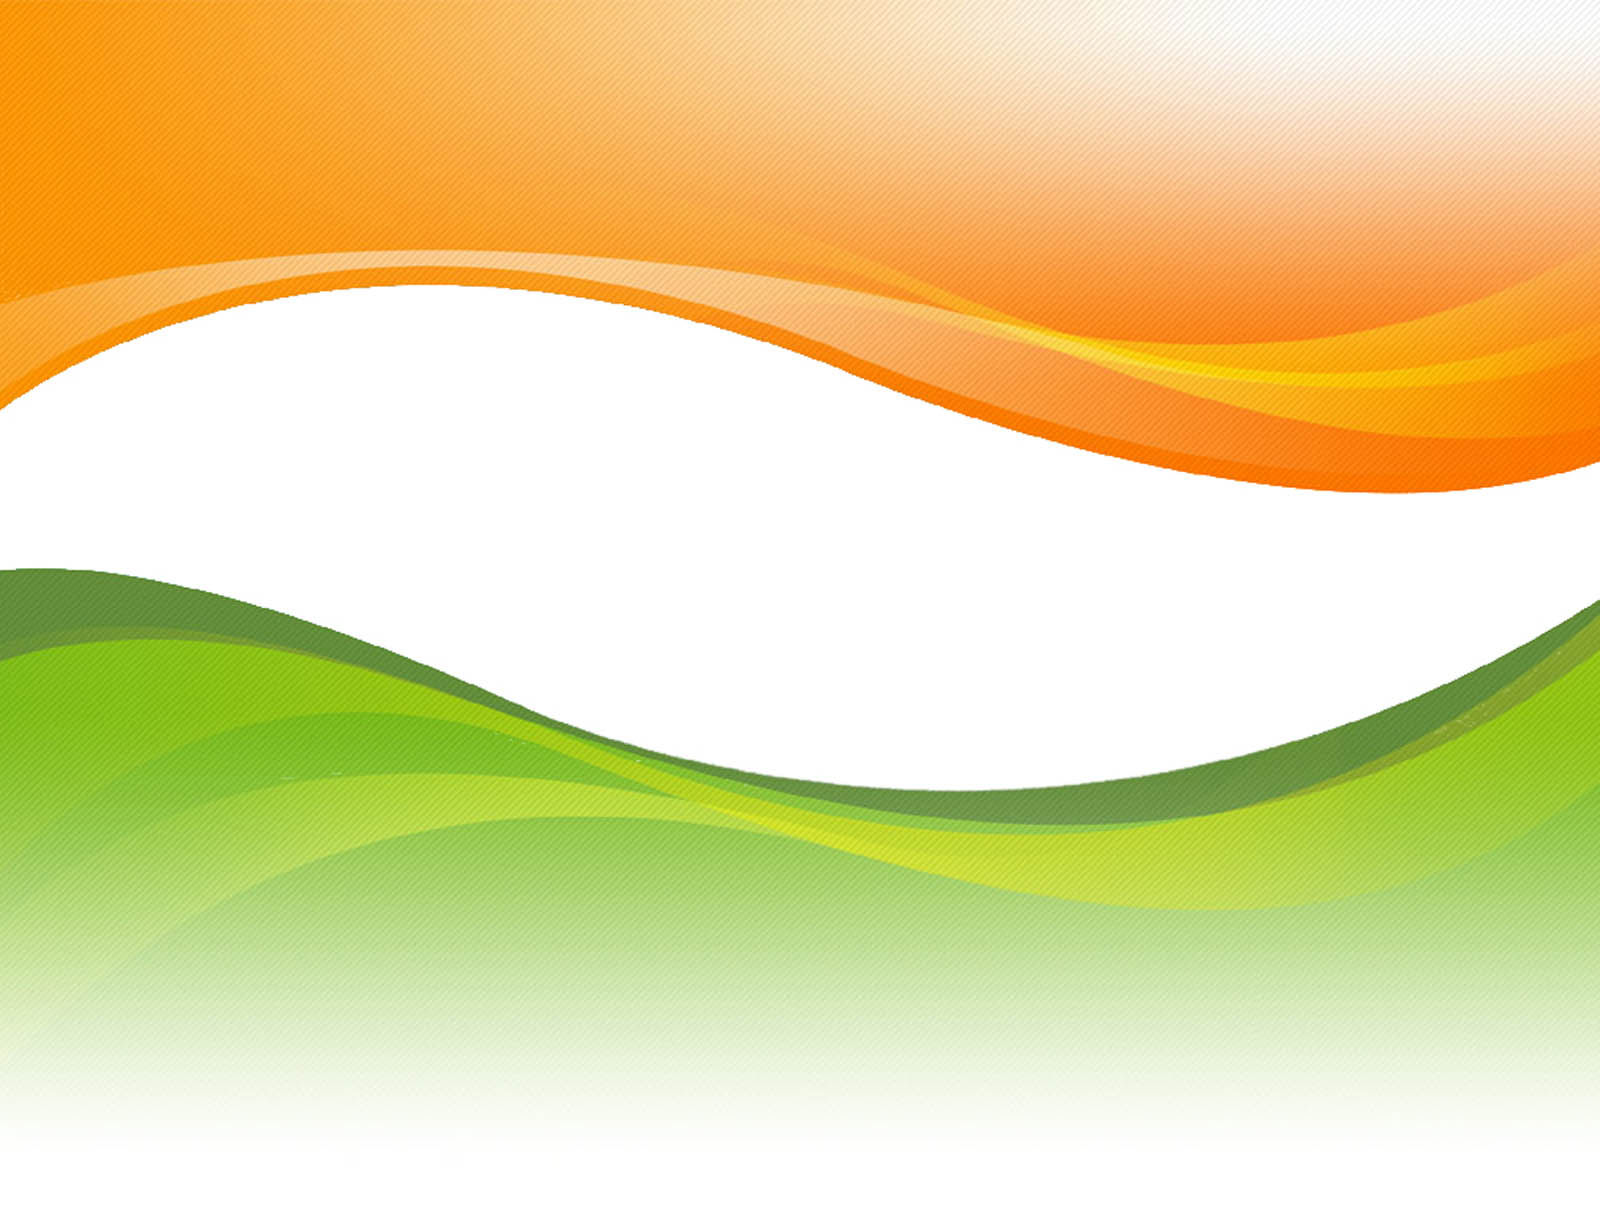 India Flag Wallpapers 2015 - Wallpaper Cave